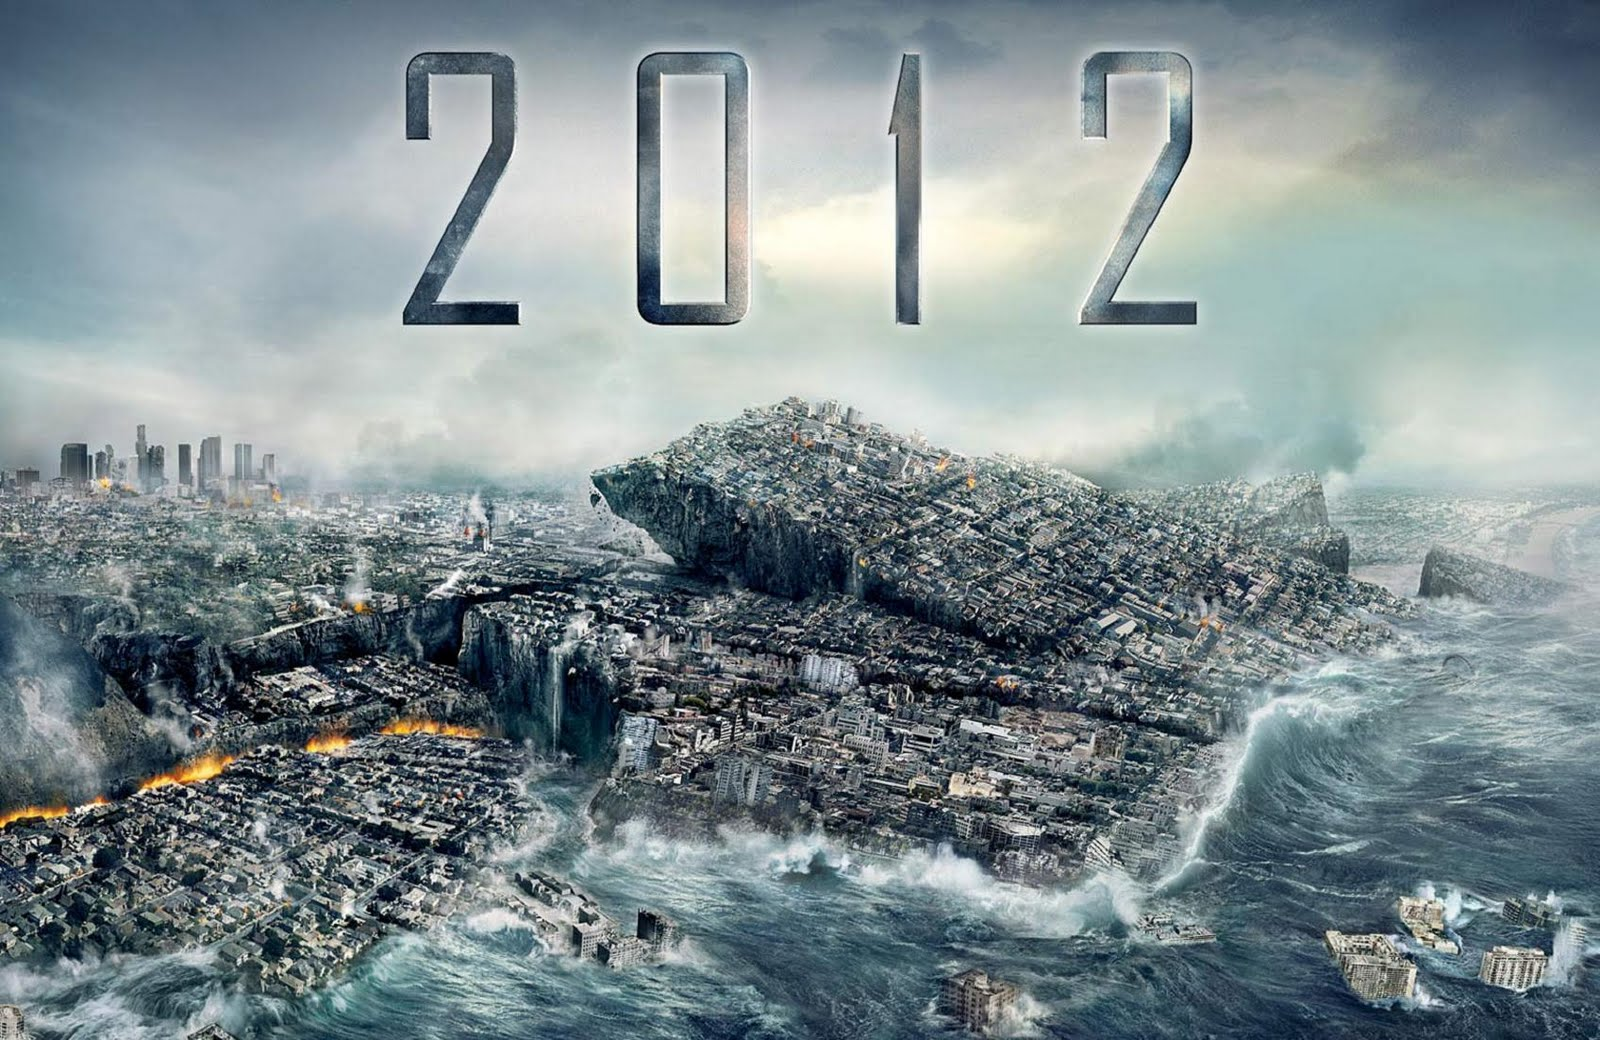 For A Movie Thats About The Worlds End This One Seemed To Have